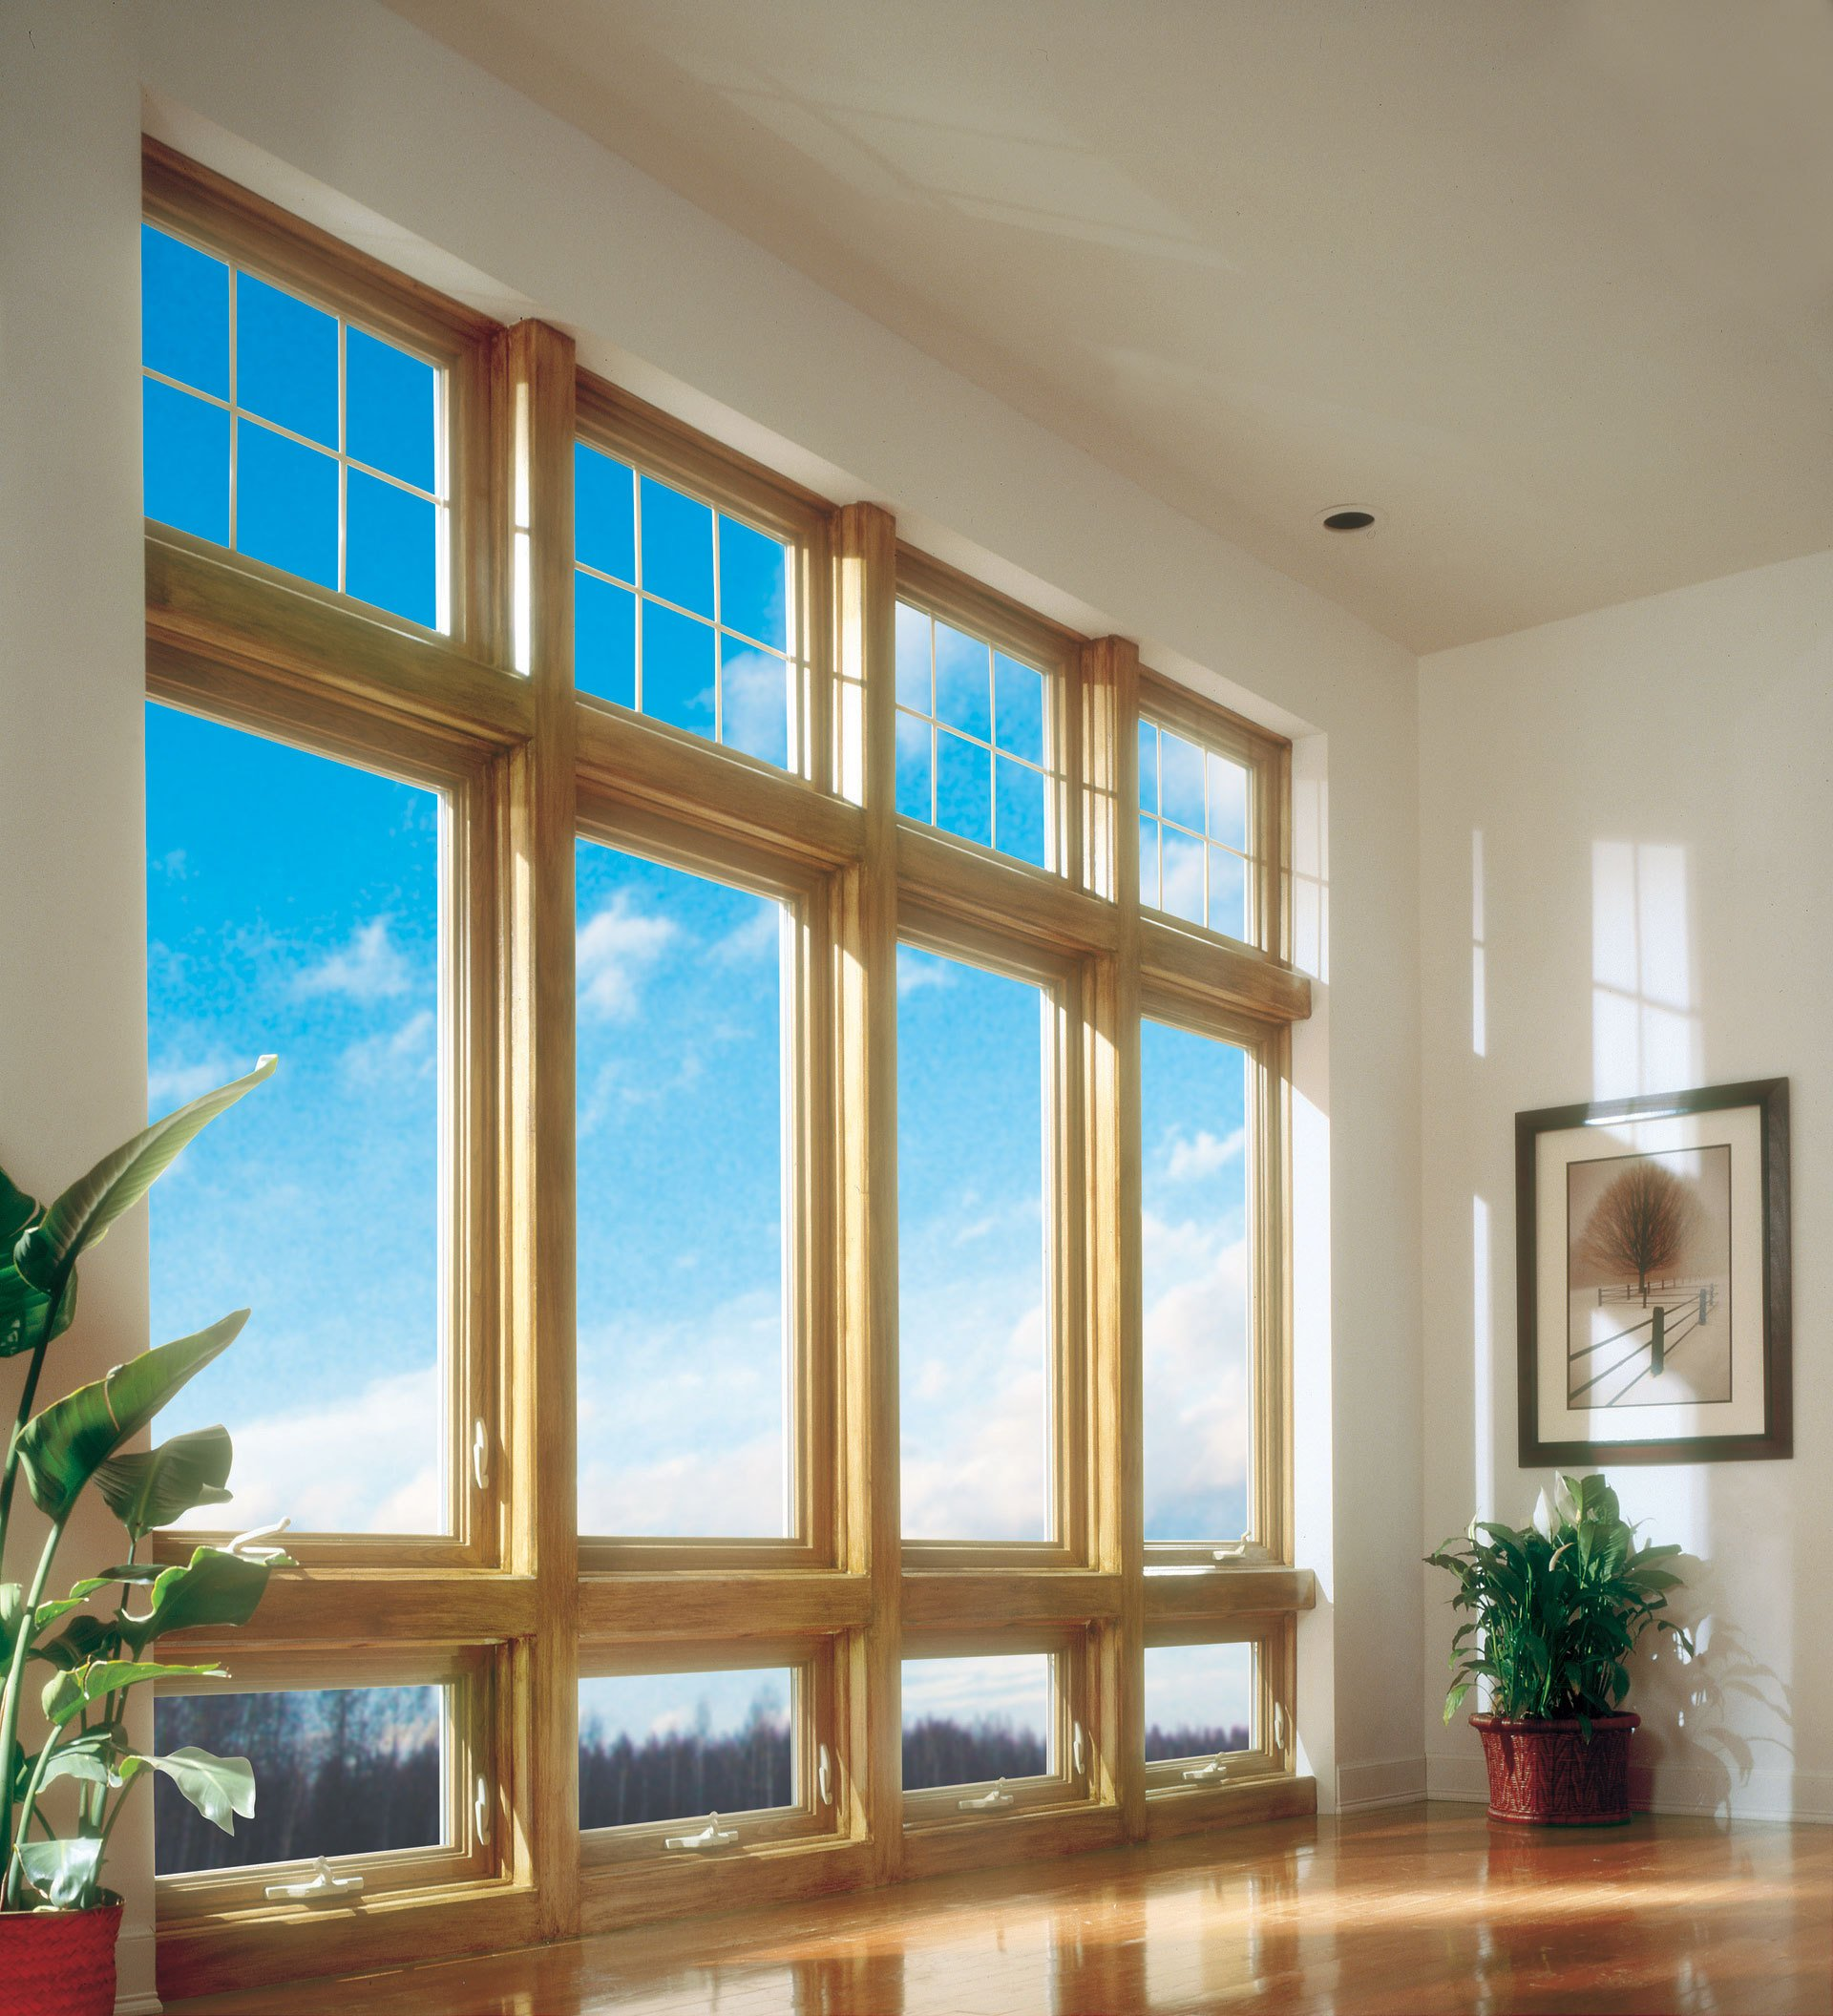 Vinyl replacement windows in cincinnati oh for Energy efficient windows